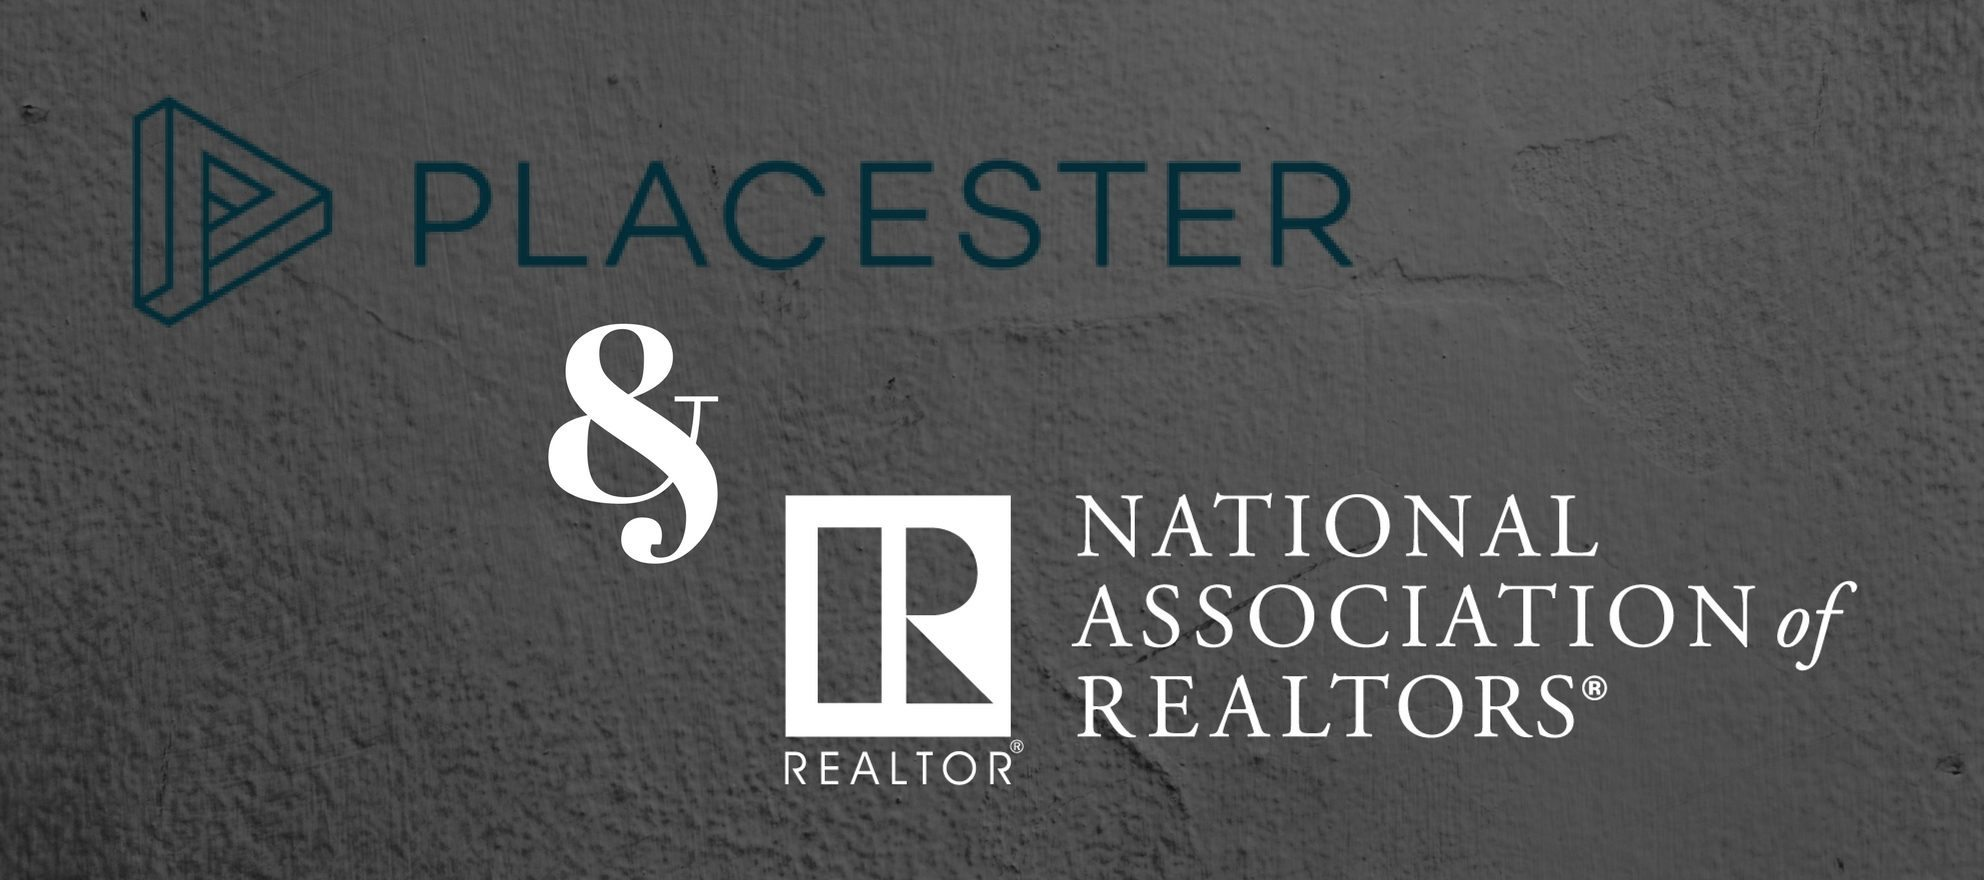 nar placester free website agreement